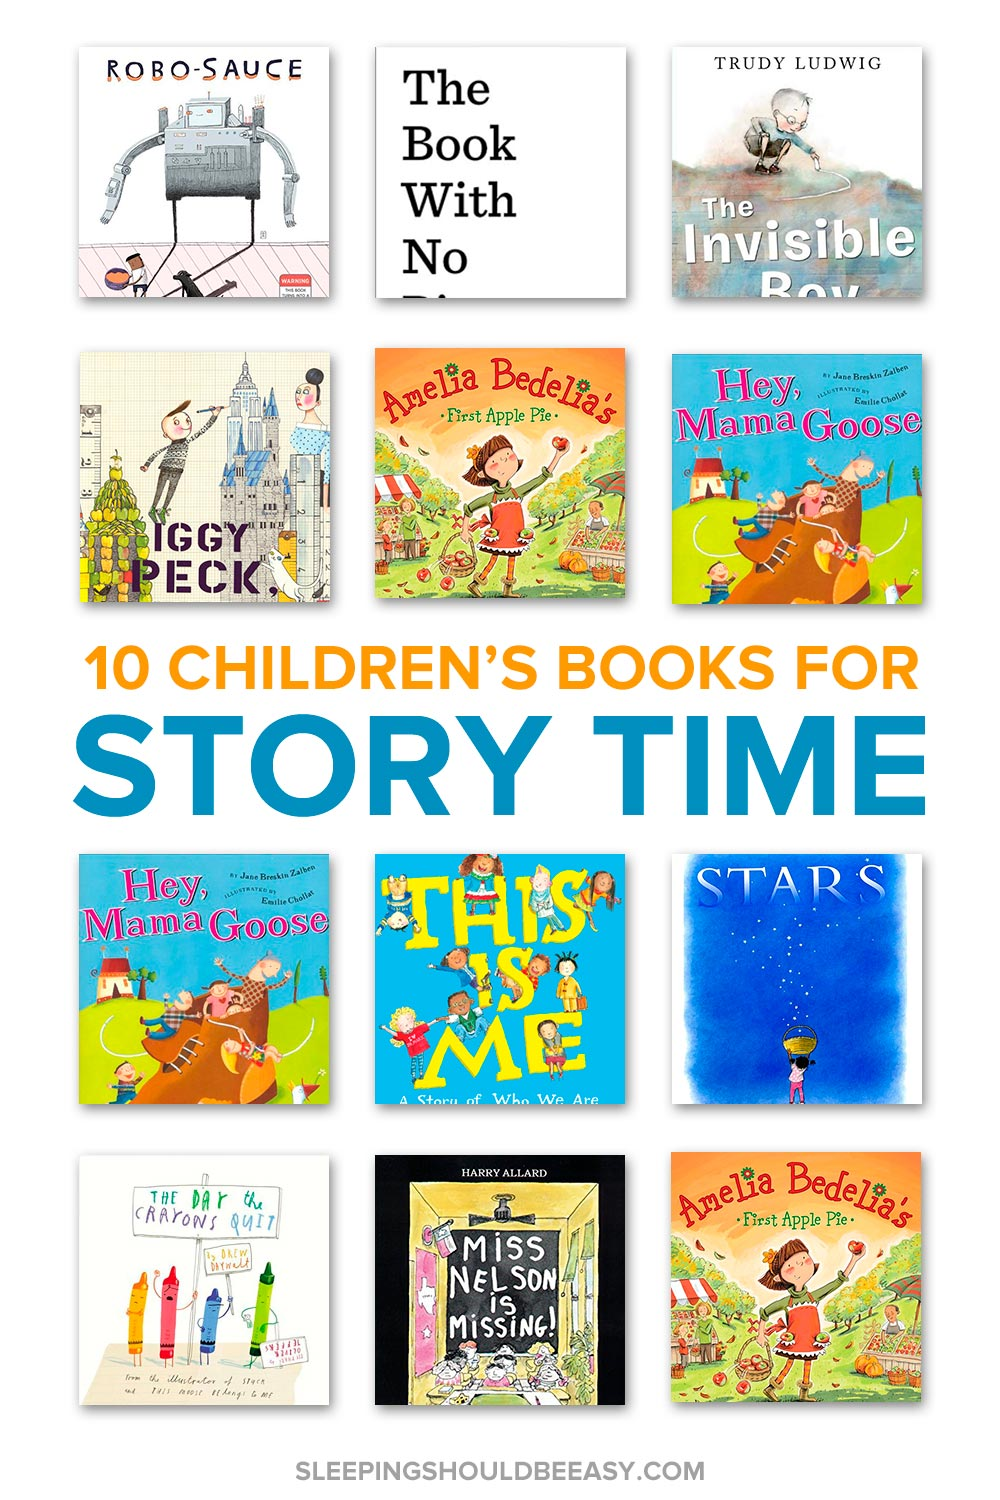 Looking for children's books to read aloud at circle time? These 10 children's books for story time to read aloud are sure to entertain kids!